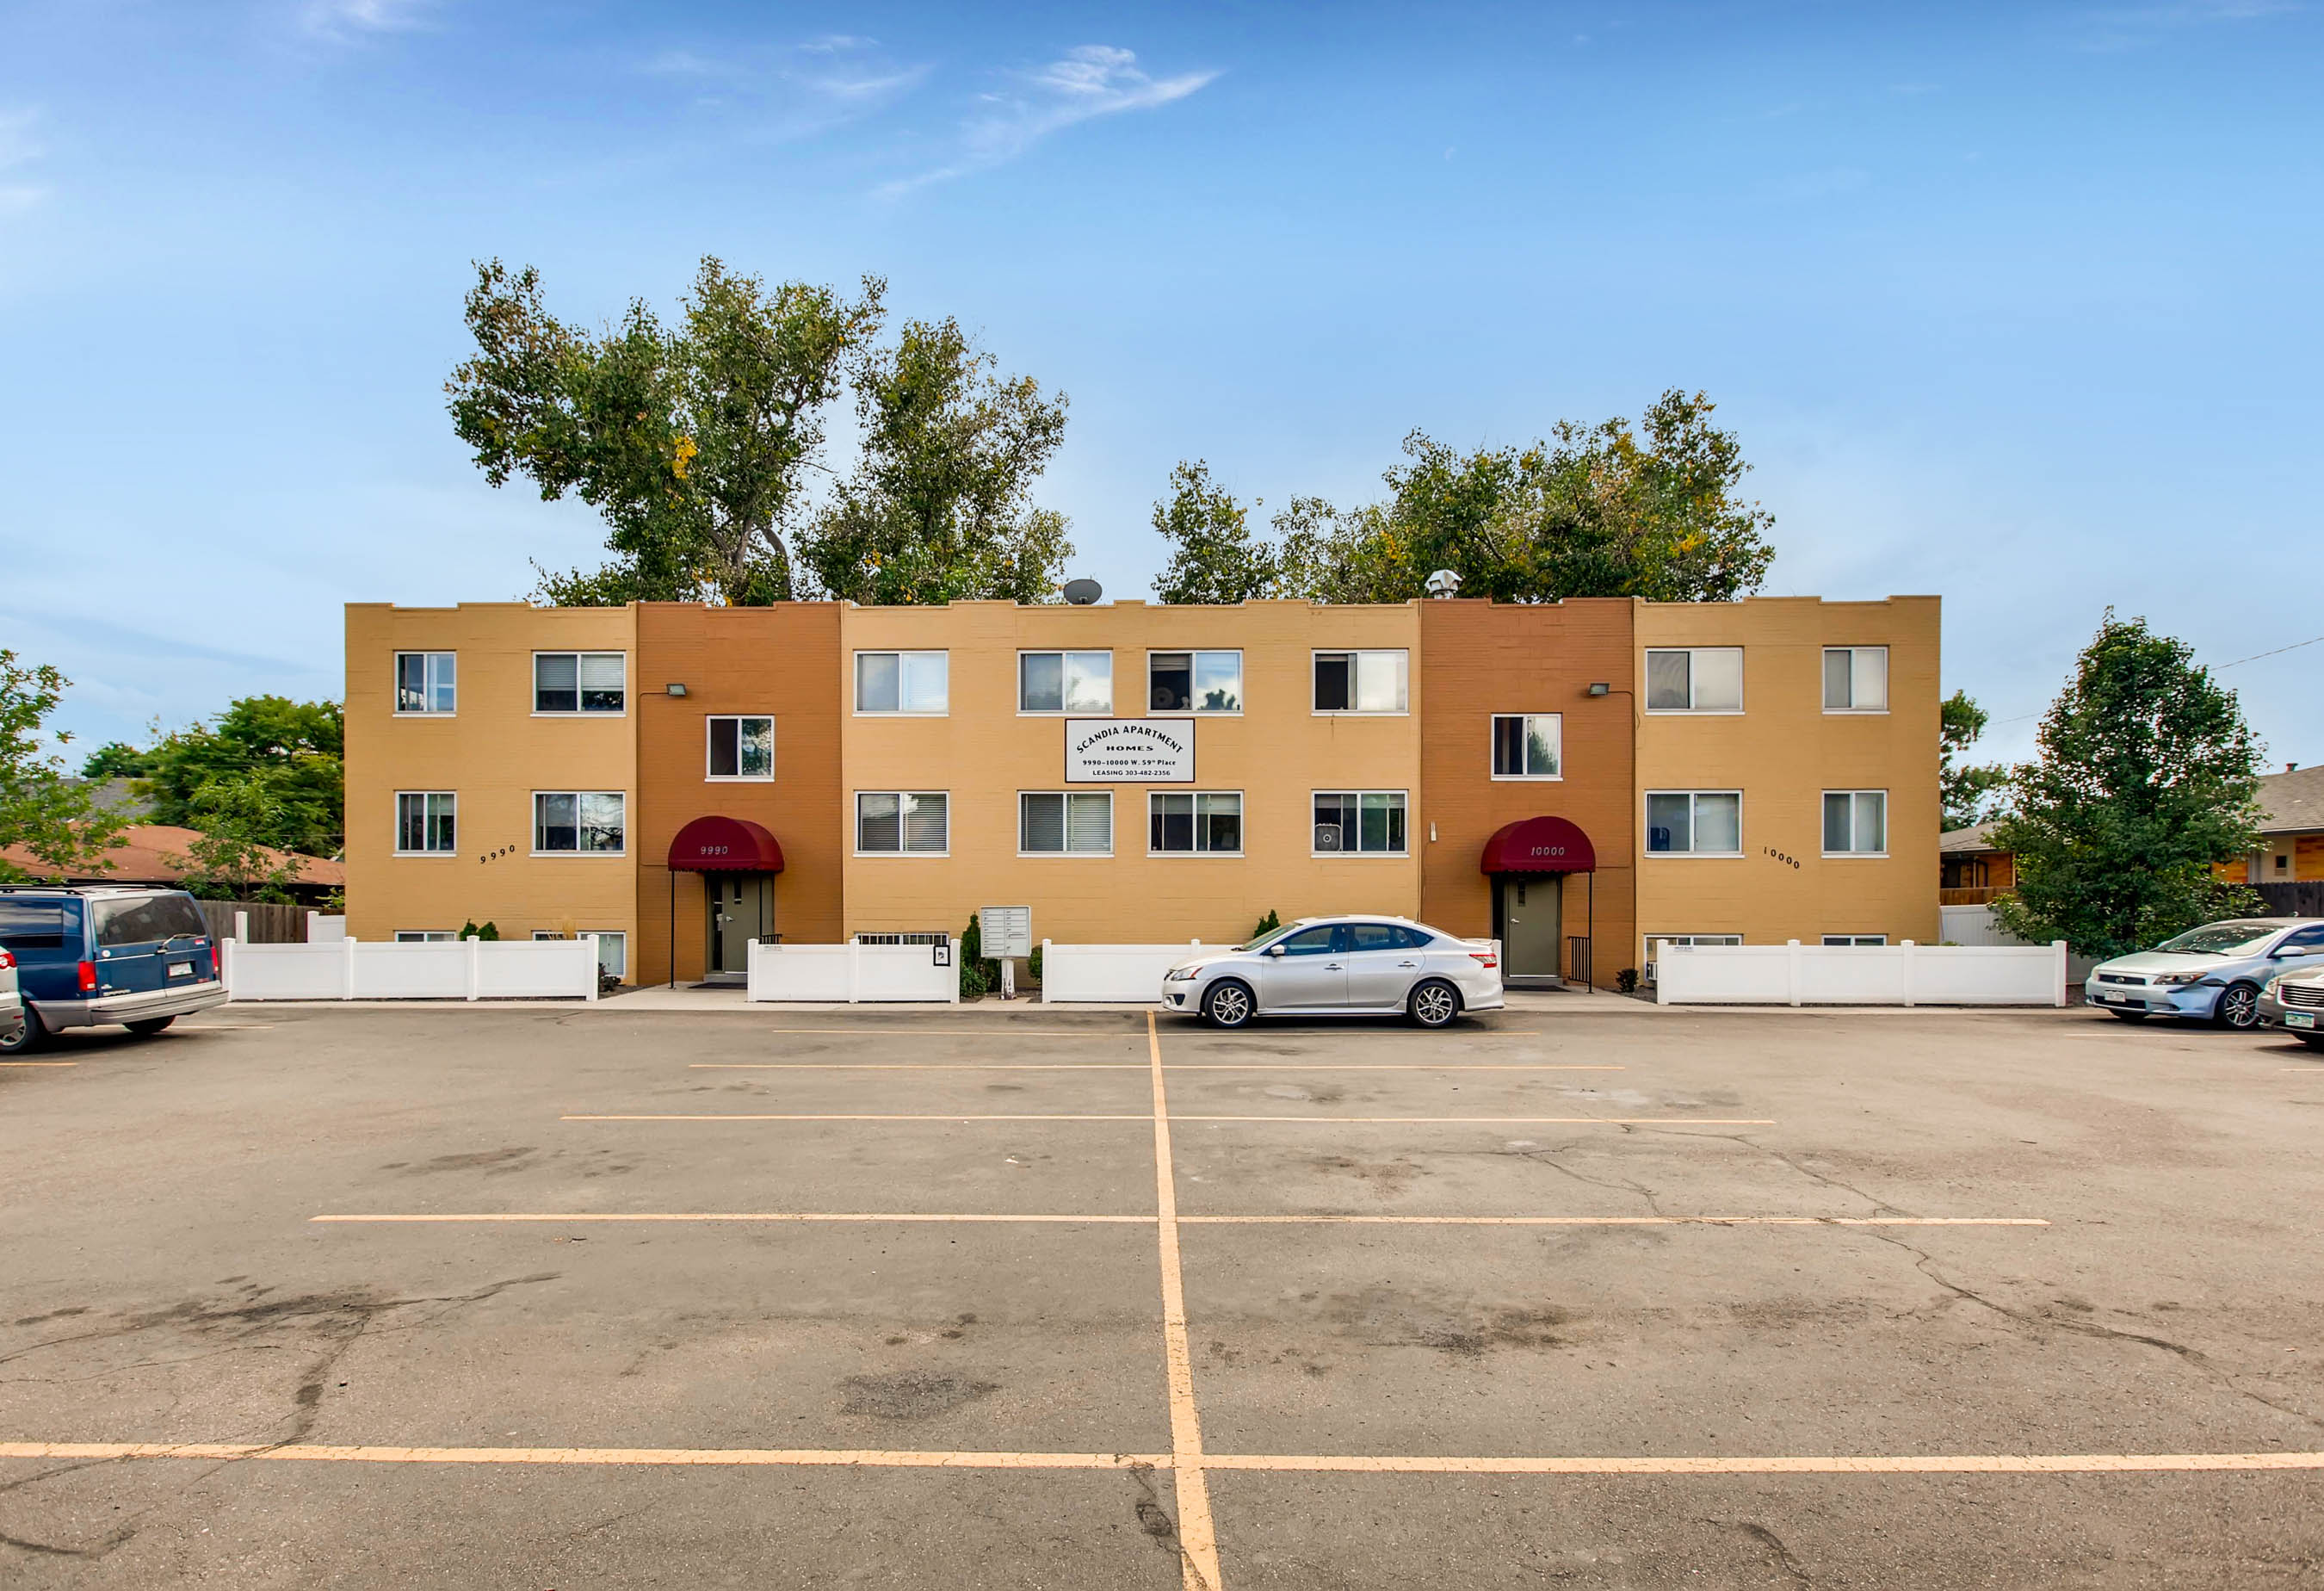 Scandia Apartments